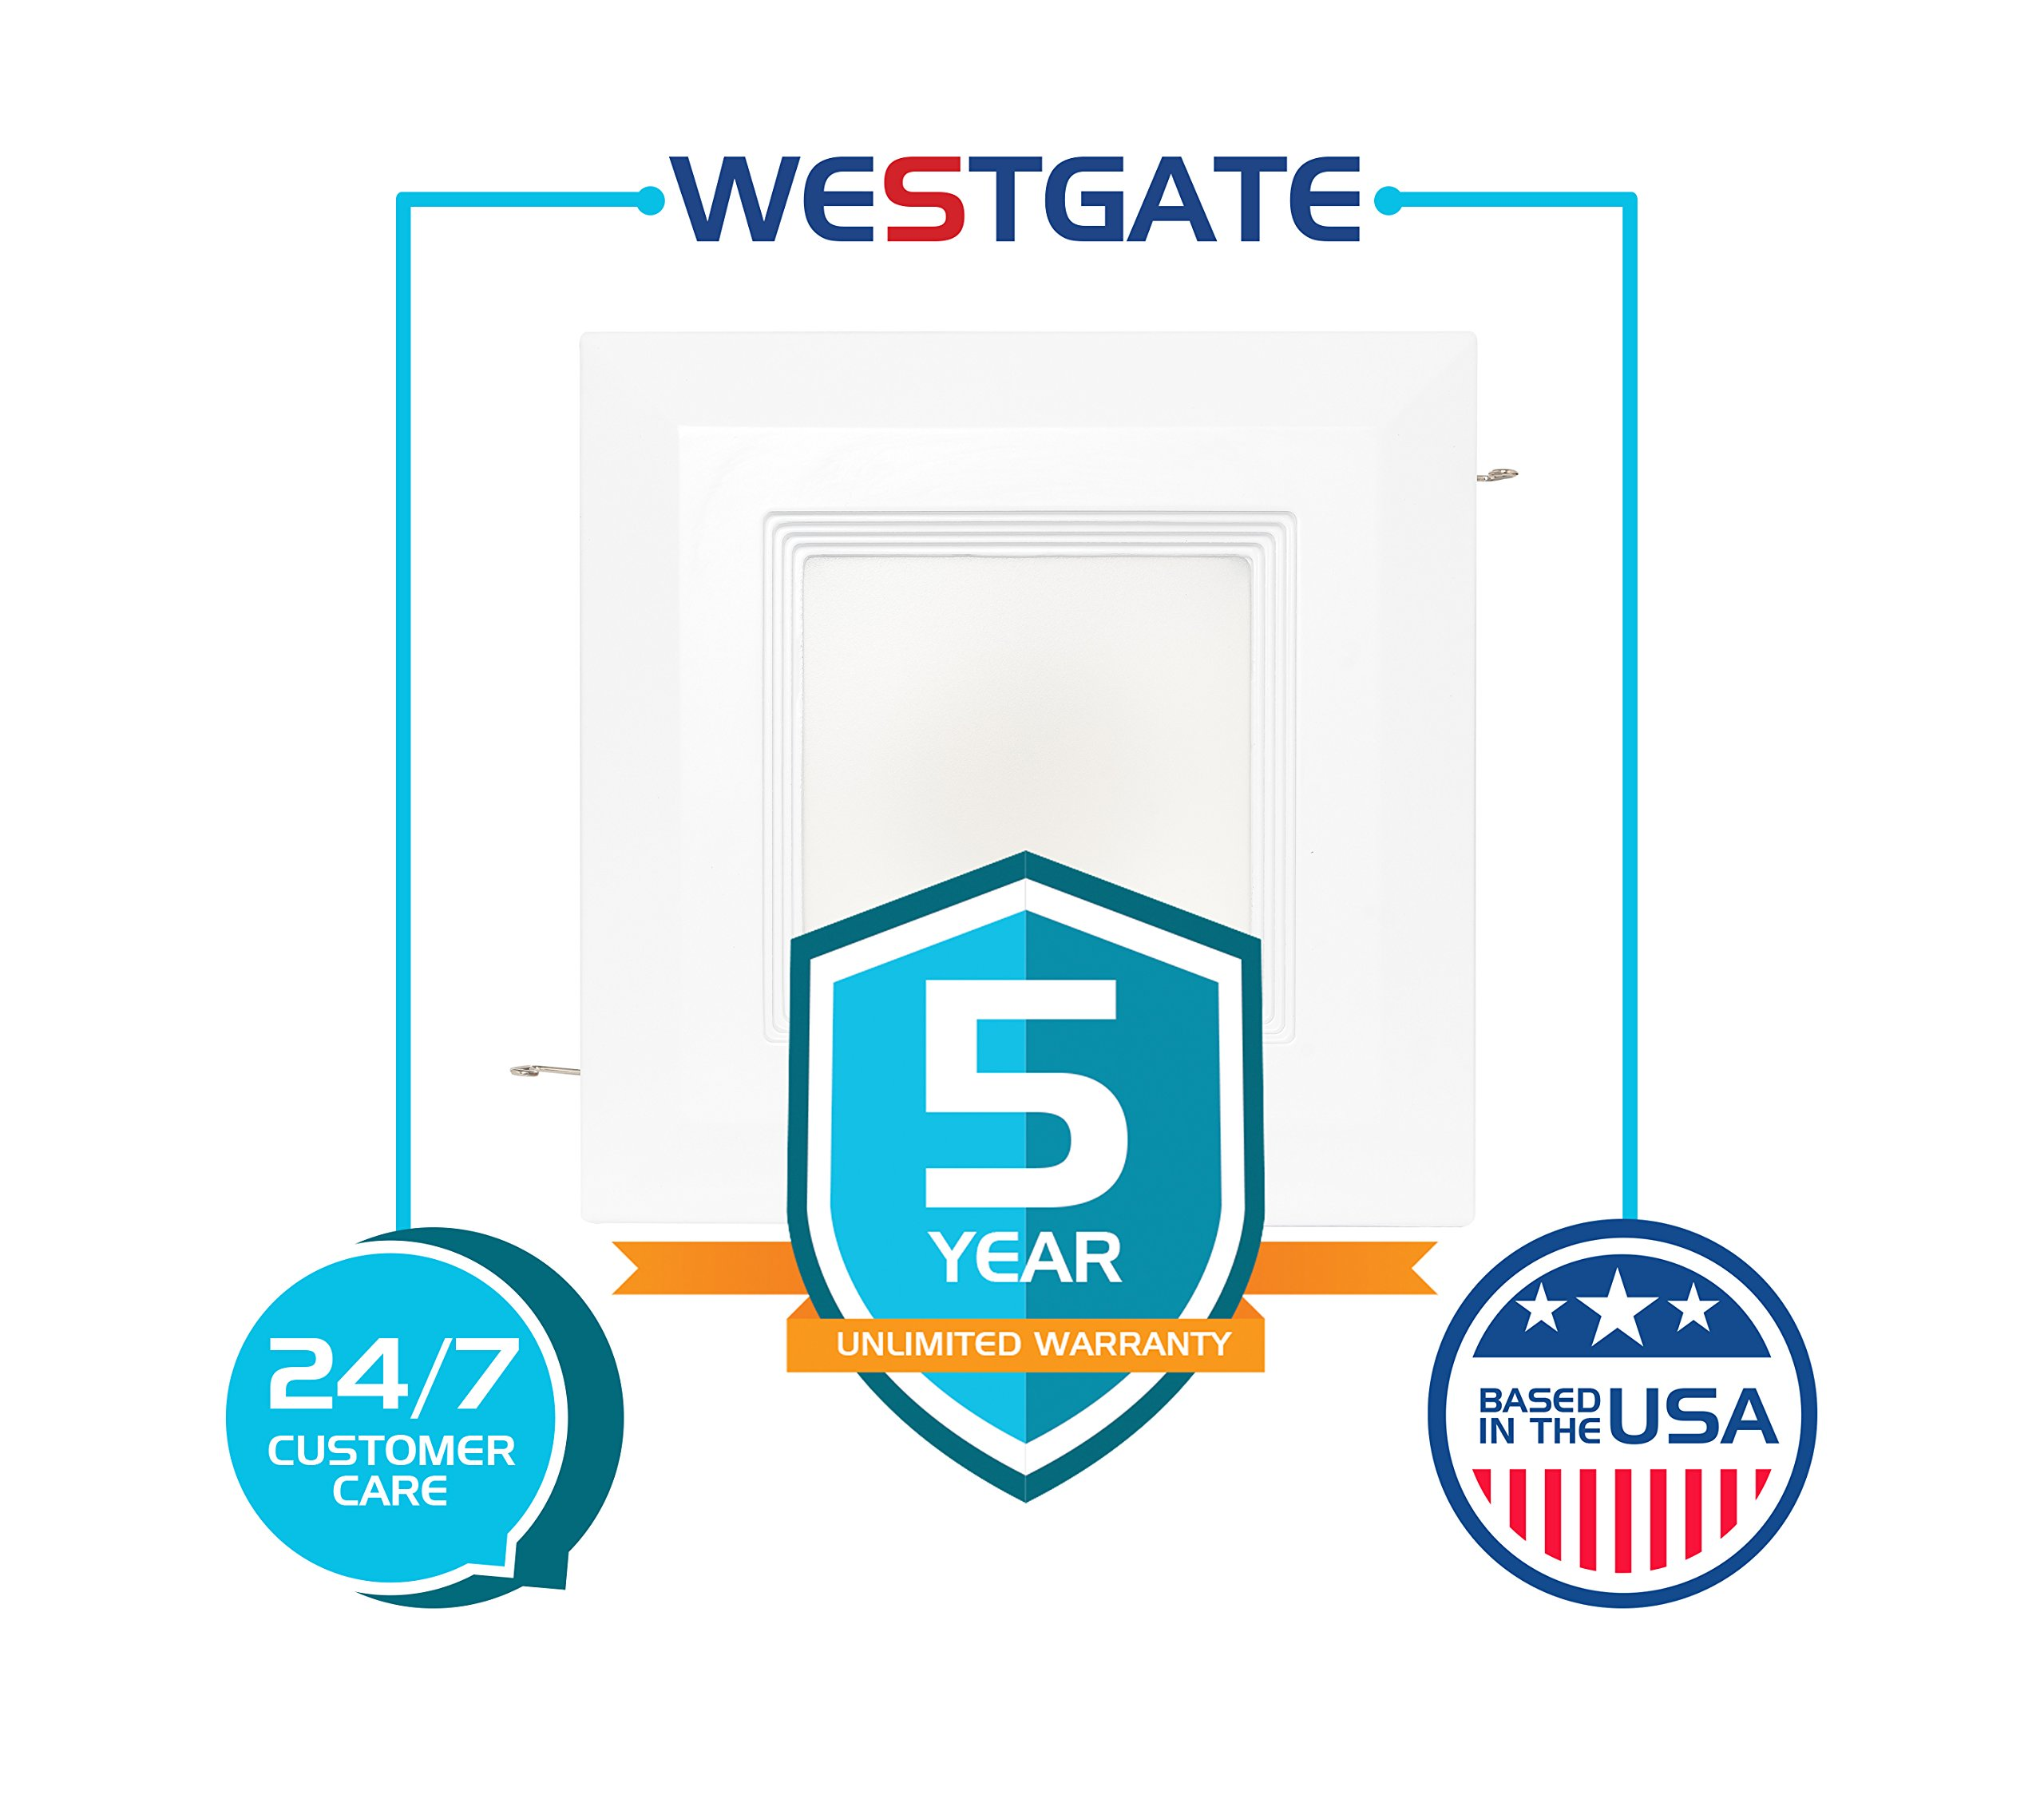 Westgate 15 Watt 6'' Inch Recessed Lighting Kit with Baffle Trim - Square Shaped LED Retrofit Downlight - Premium Dimmable Light Fixture - Best Ceiling Lights - ETL Listed (4100K Cool White 8 Pack) by Westgate